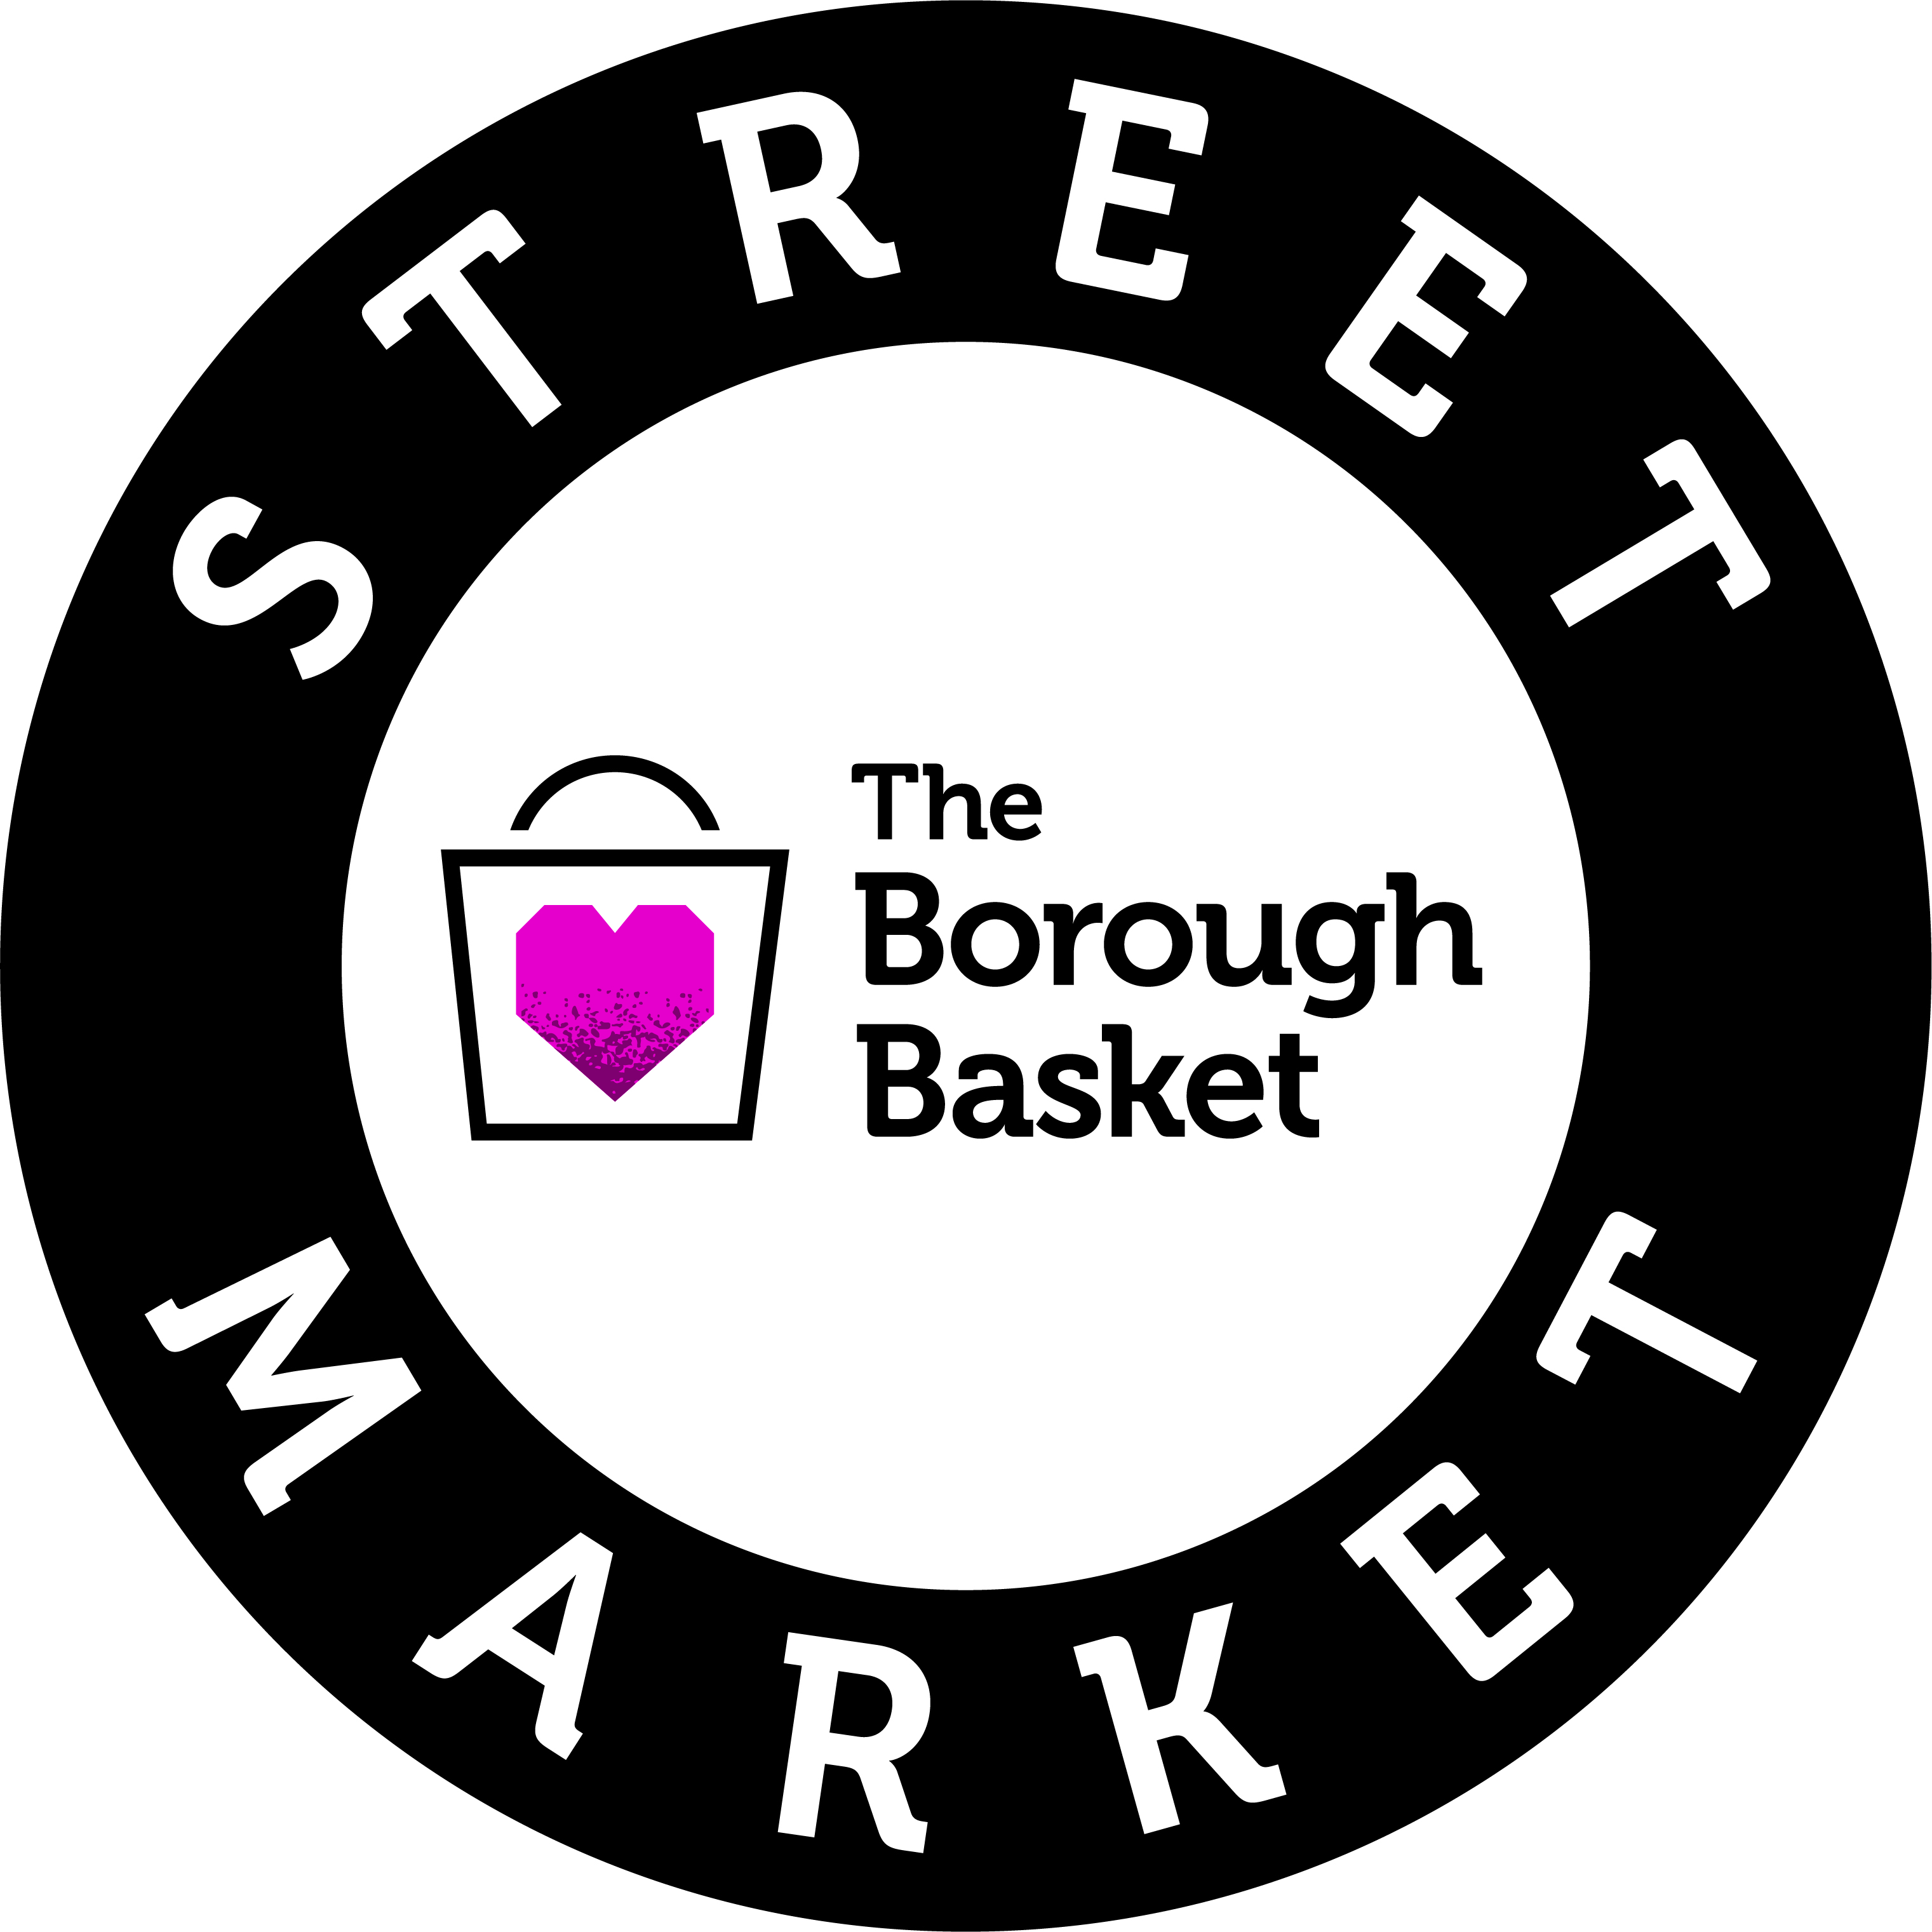 Round logo. Black ring wording reads Street Market with The Borough Basket logo in the middle.